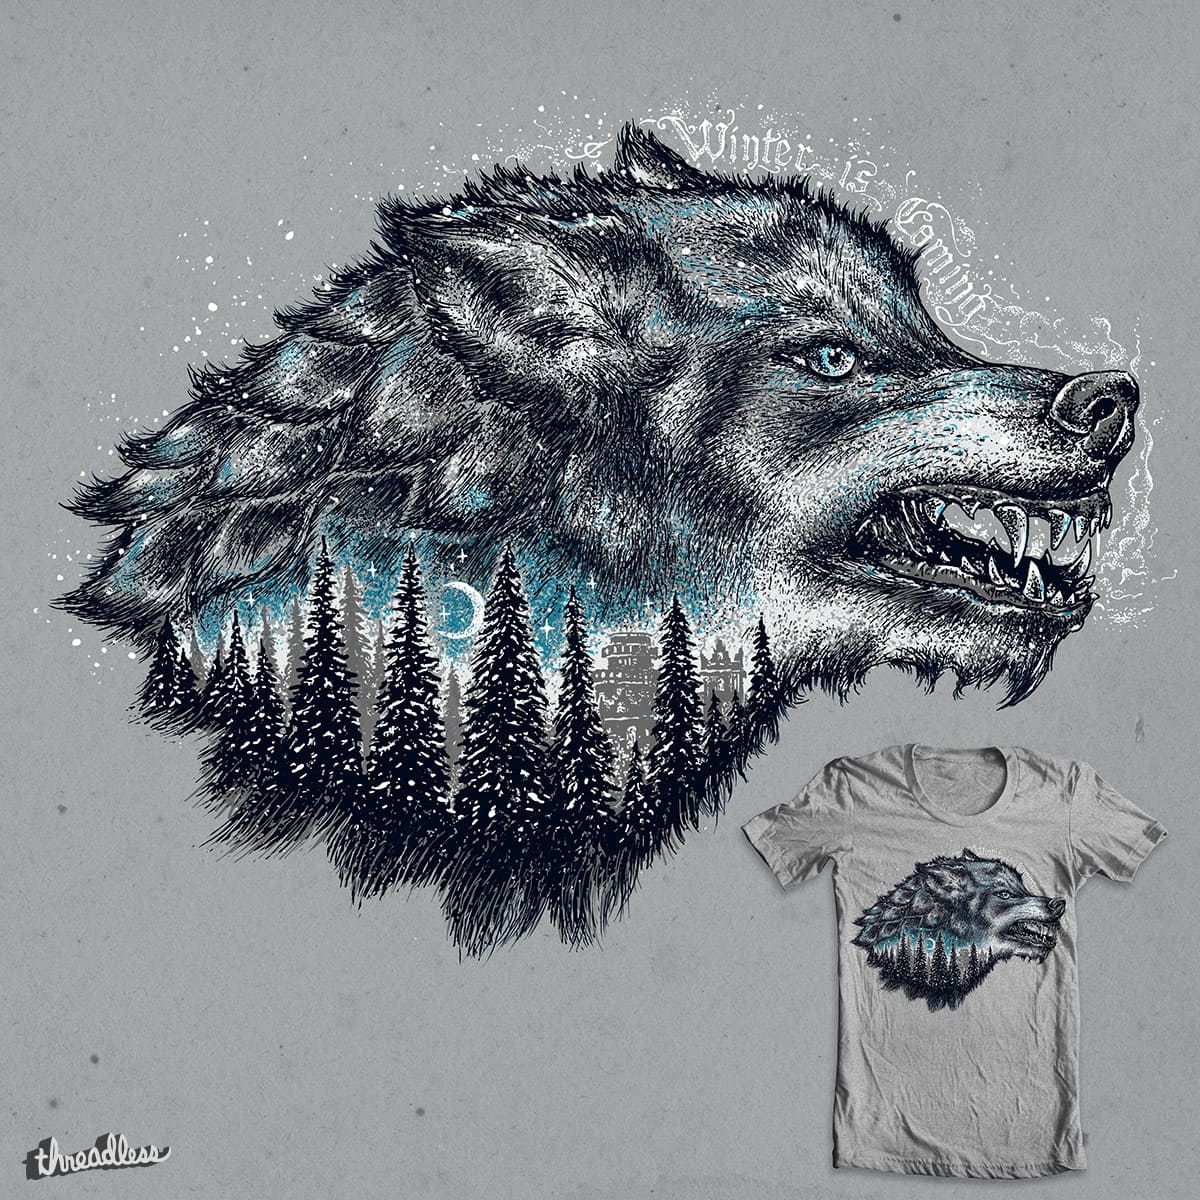 Winter by alan maia on Threadless